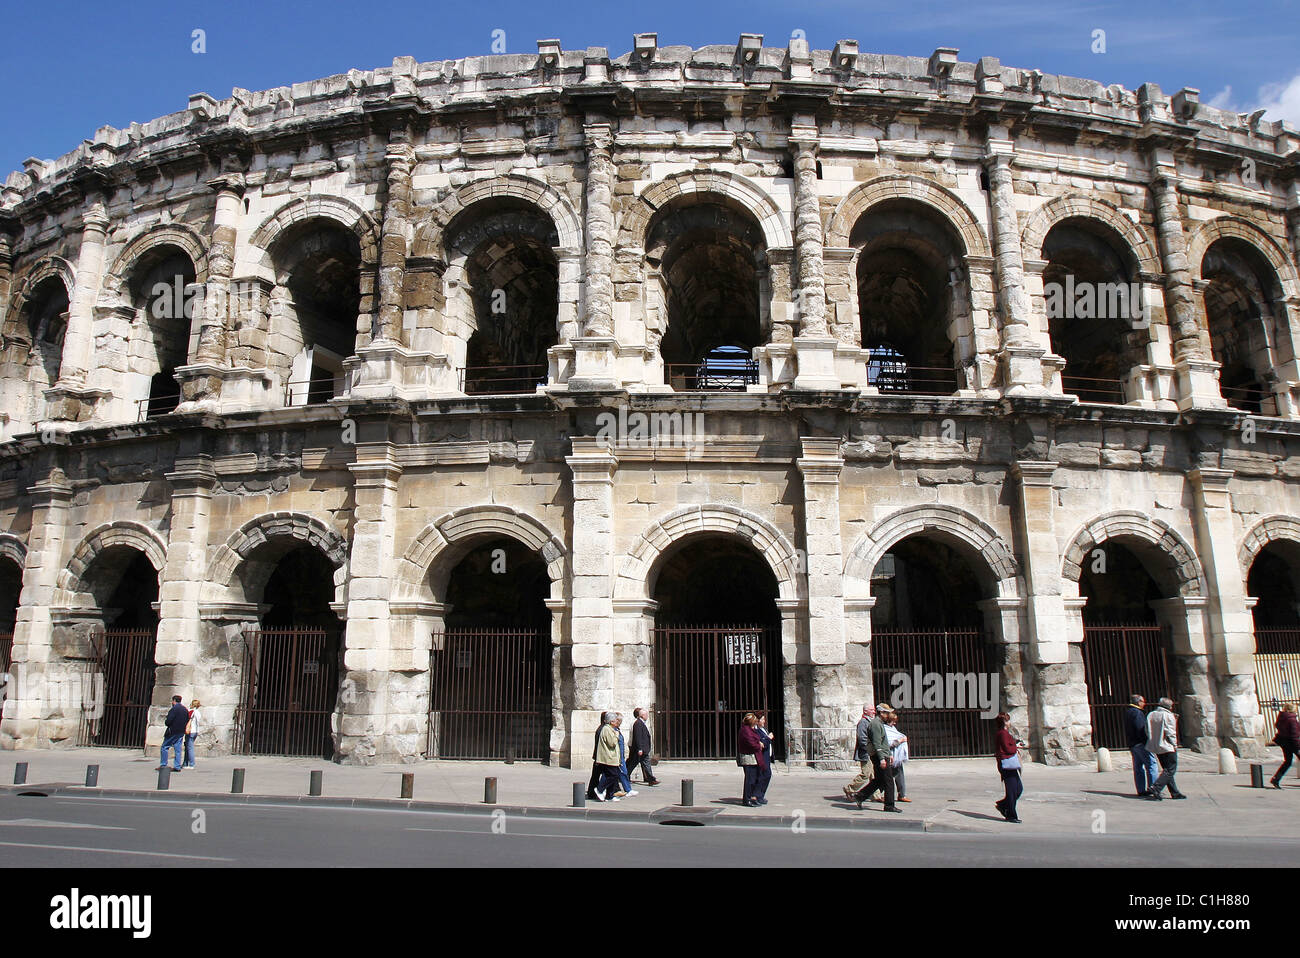 France, Gard, the Nimes city's arenas - Stock Image